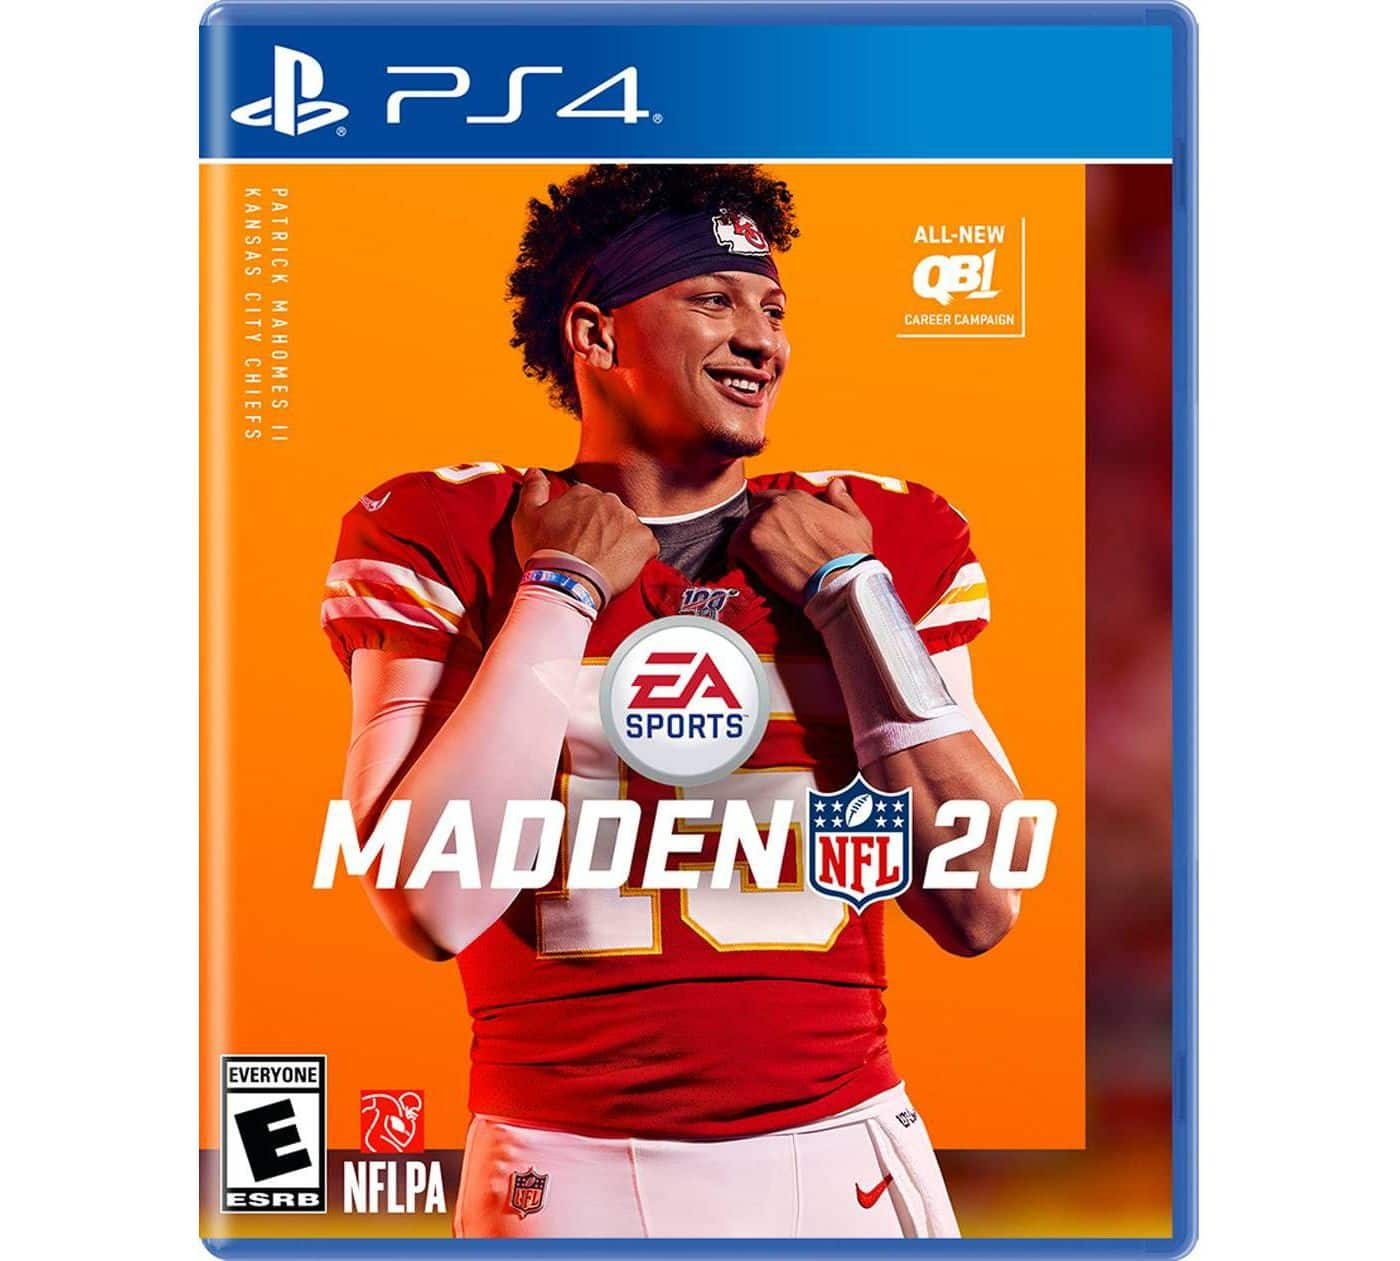 Madden 20 Playstation 4 or Xbox One - Target - $29.99 with in store Pickup Same Day